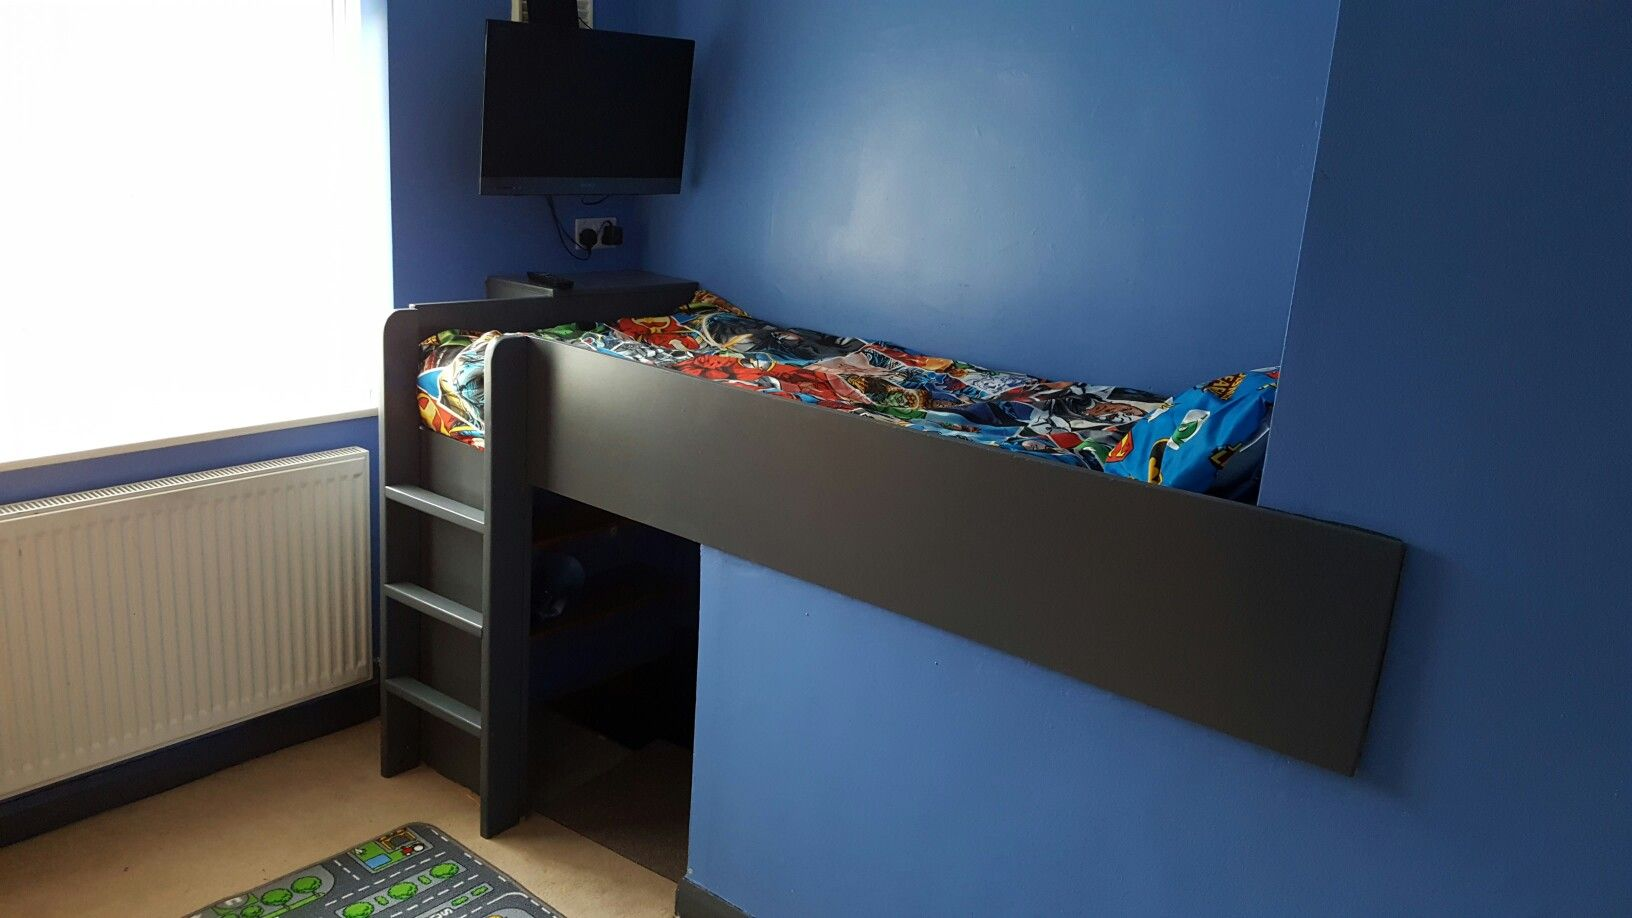 Cabin Bed Over Stair Box Box Bedroom Box Room Bedroom Ideas